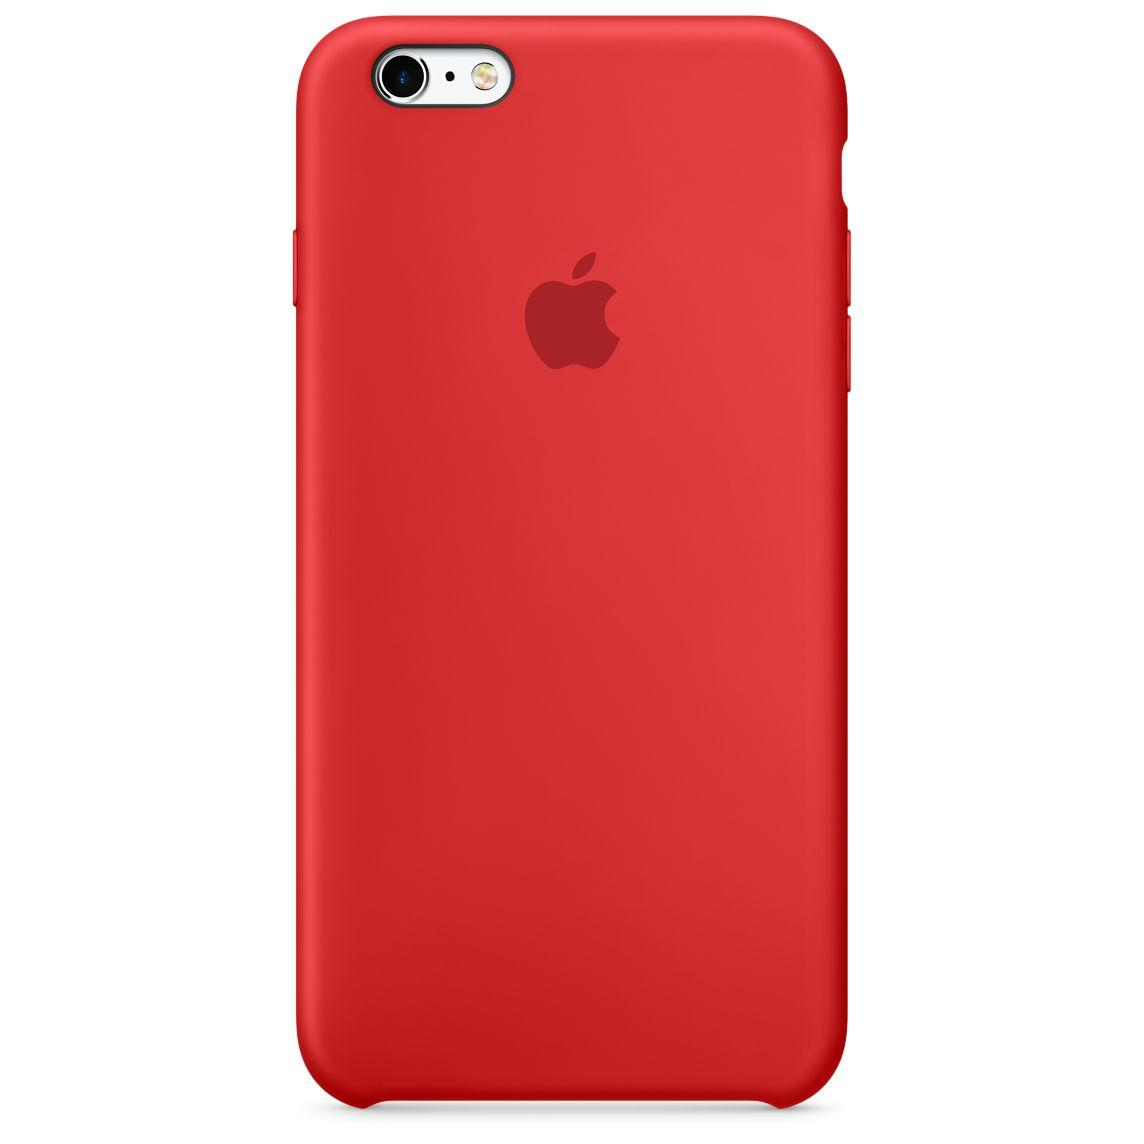 iphone 6s buy iphone 6s silicone in nigeria buy iphone 6s silicone 11467